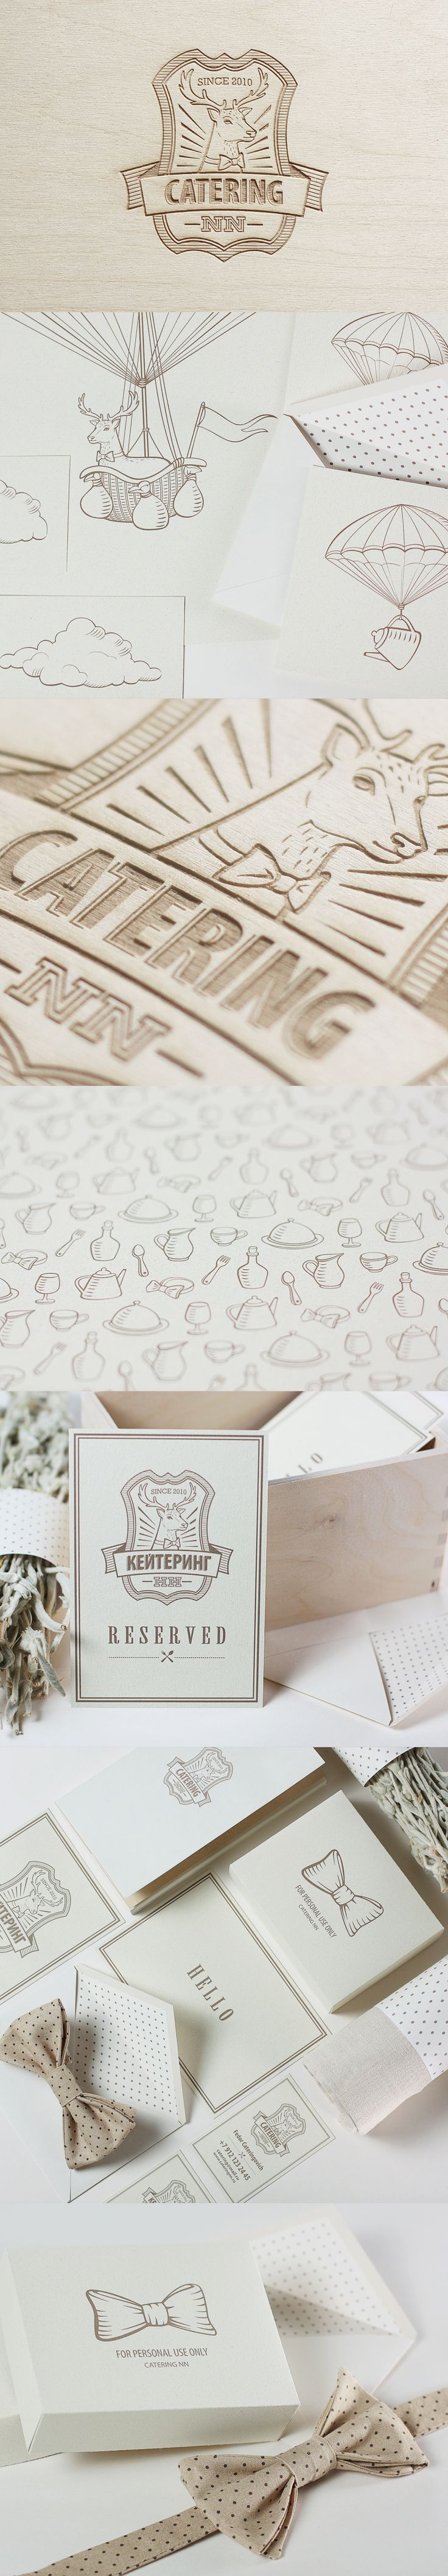 Catering Identity LOVE all of the design